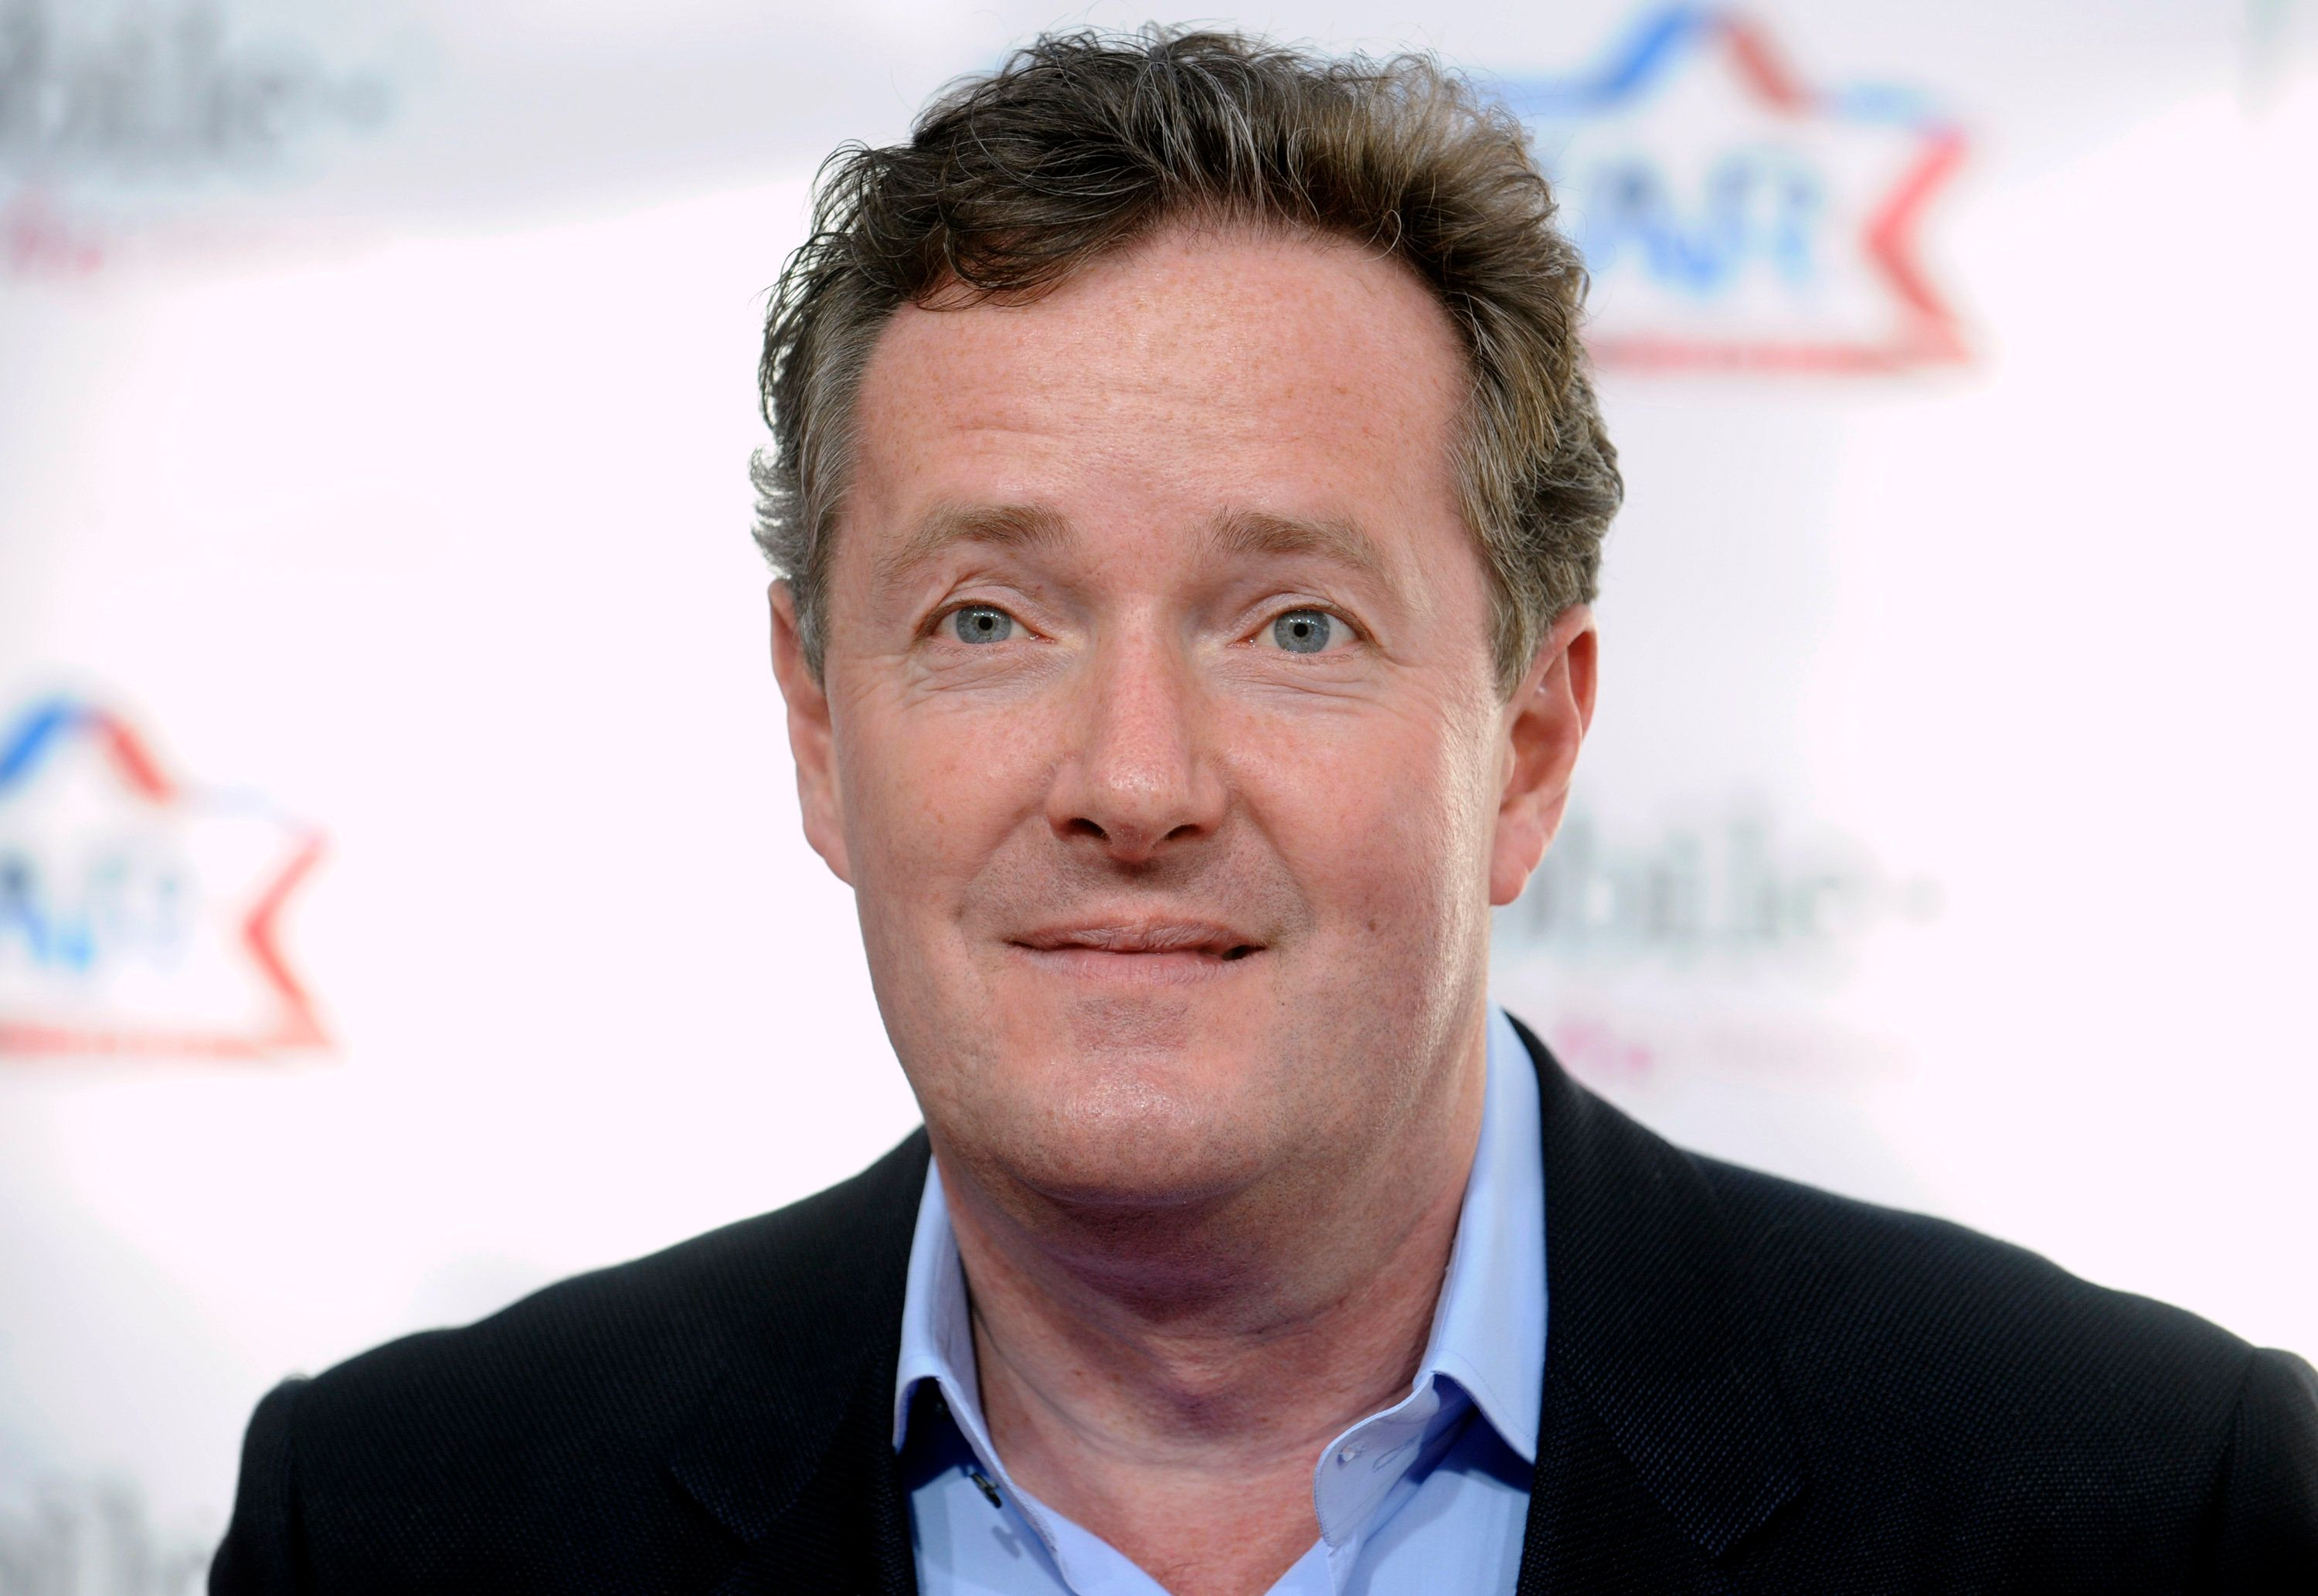 Piers Morgan arrives at the T-Mobile Magenta Carpet pre NBA All-Star Game event in Los Angeles on February 20, 2011. REUTERS/Phil McCarten (UNITED STATES - Tags: ENTERTAINMENT HEADSHOT)